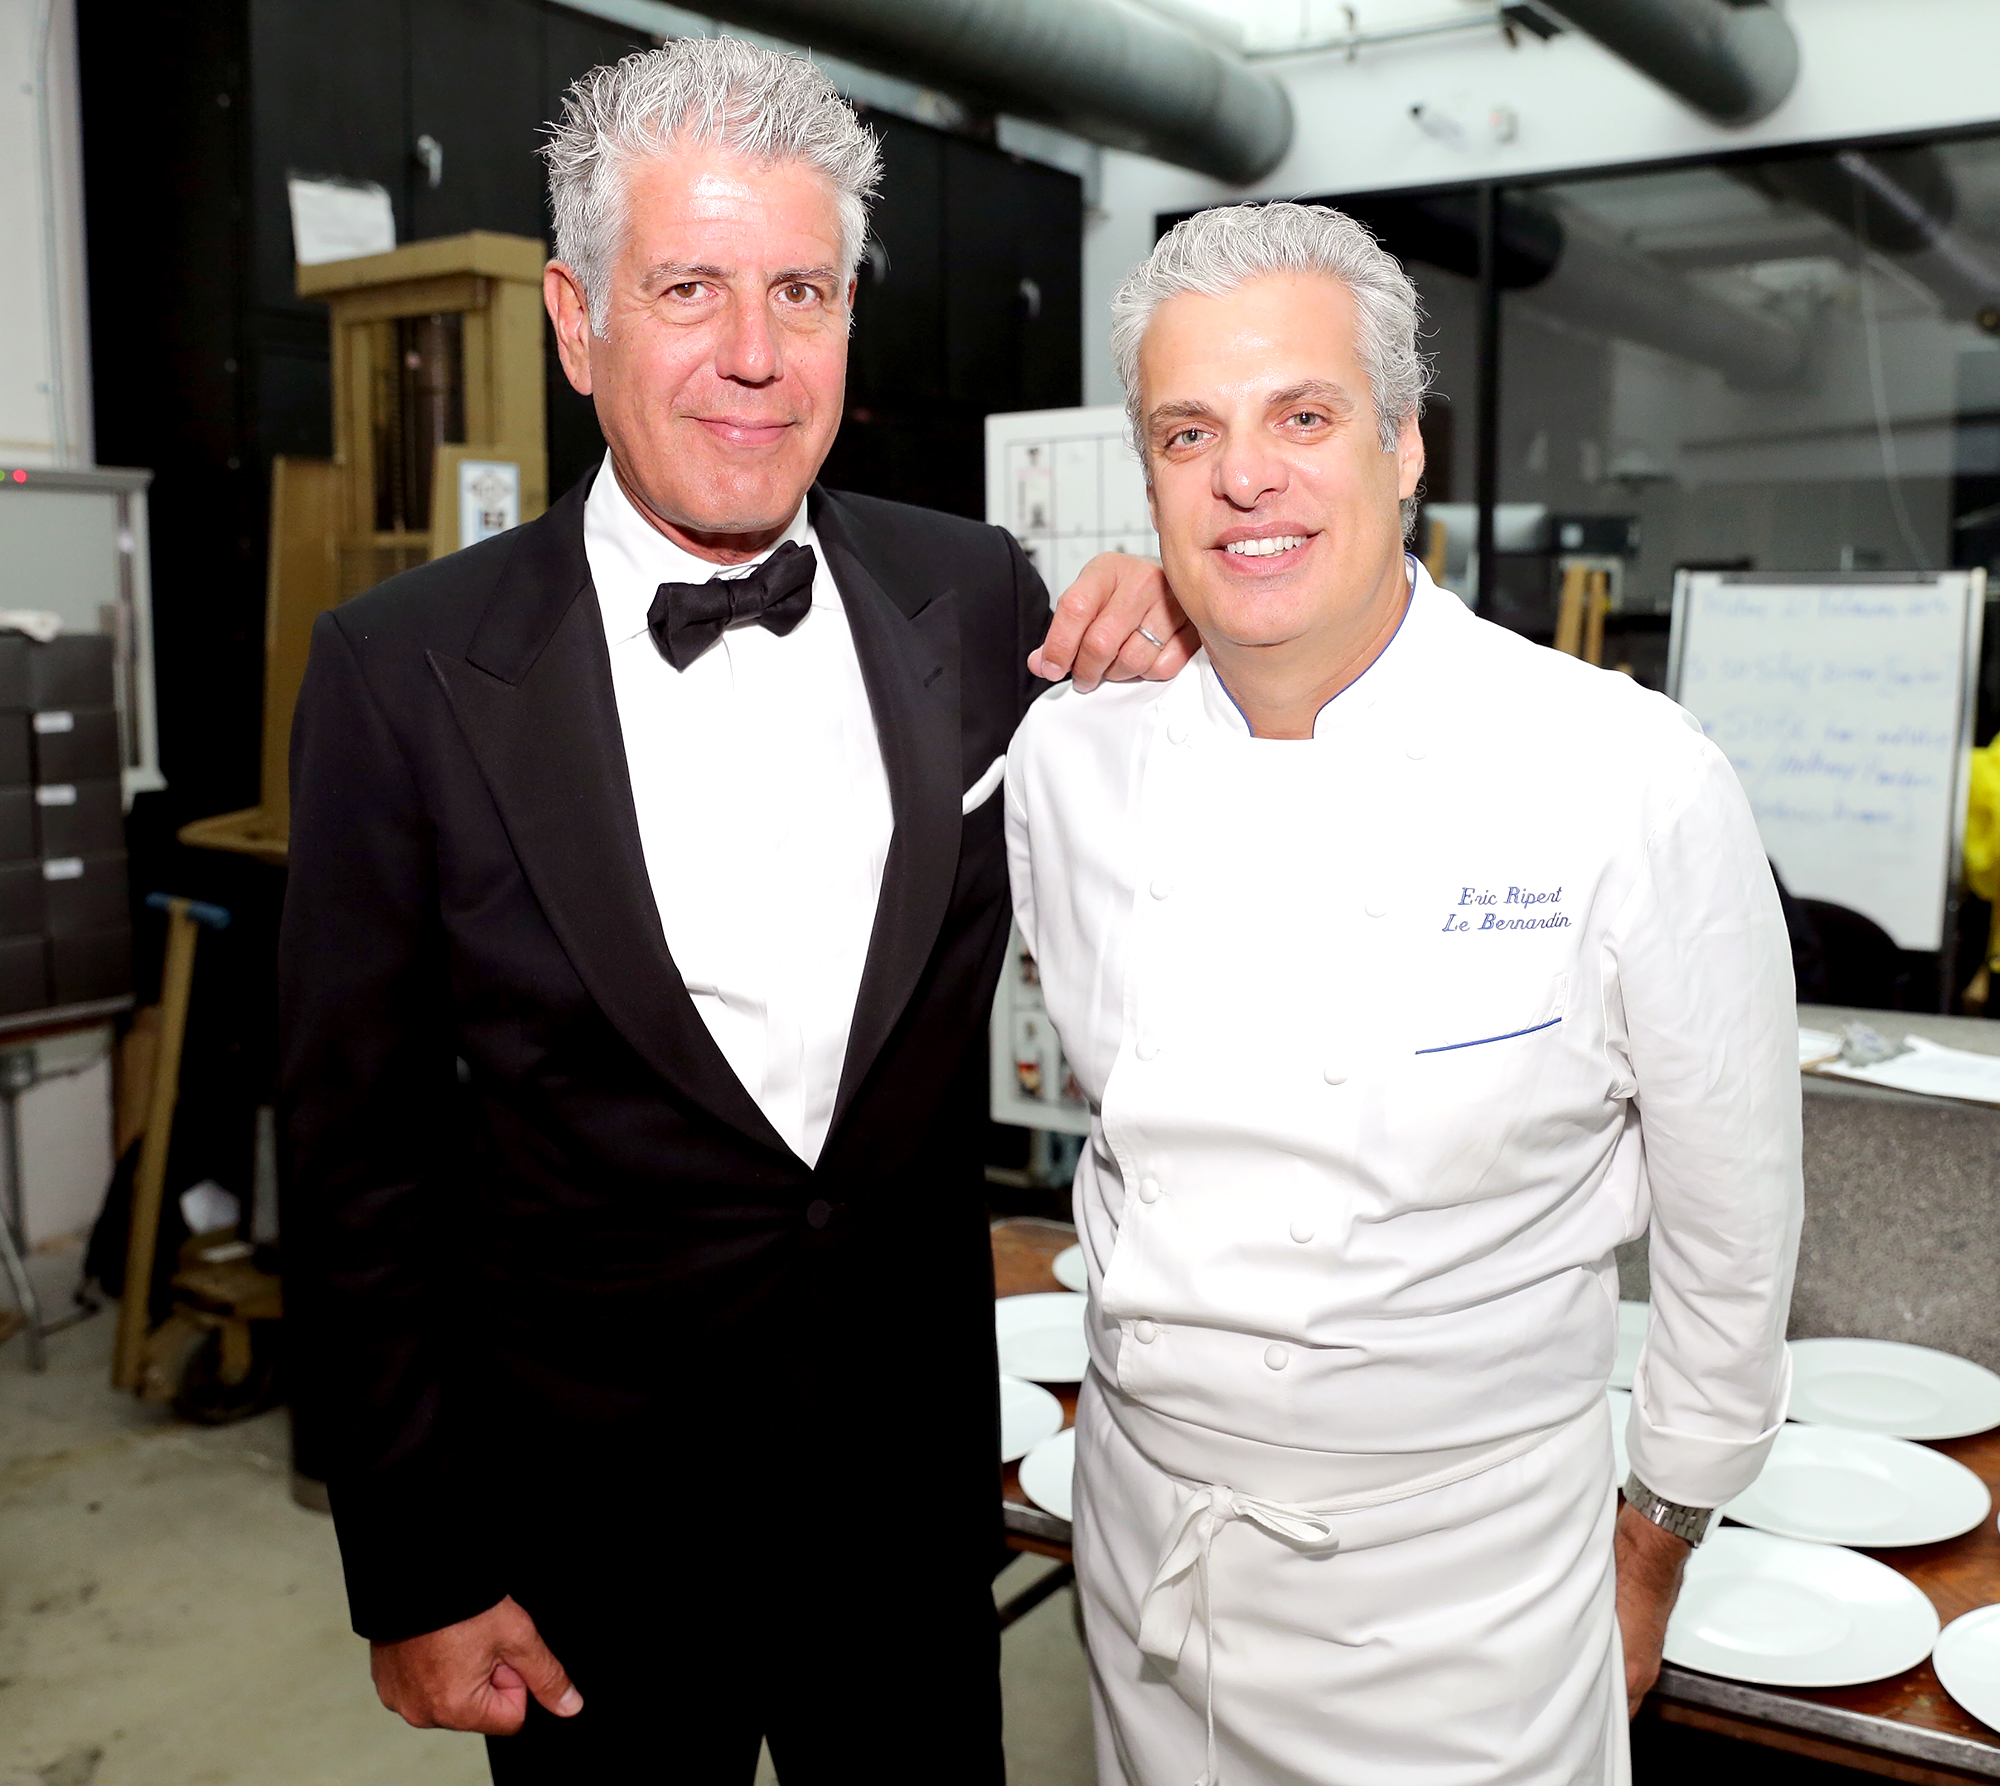 Anthony-Bourdain-and-Eric-Ripert